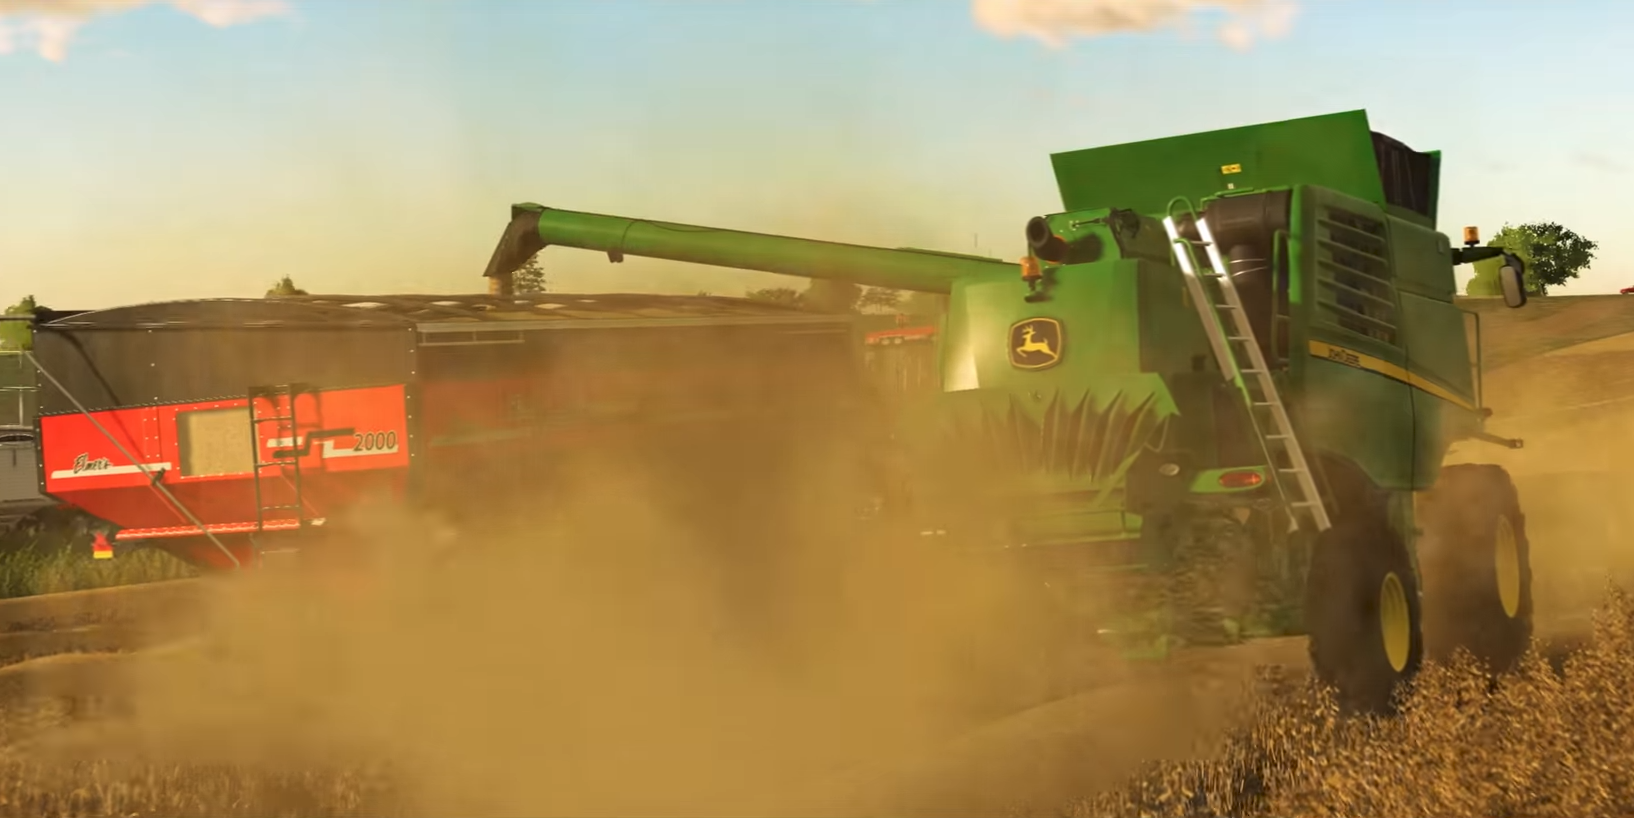 GIANTS Software Confirms: Only One John Deere Combine Coming